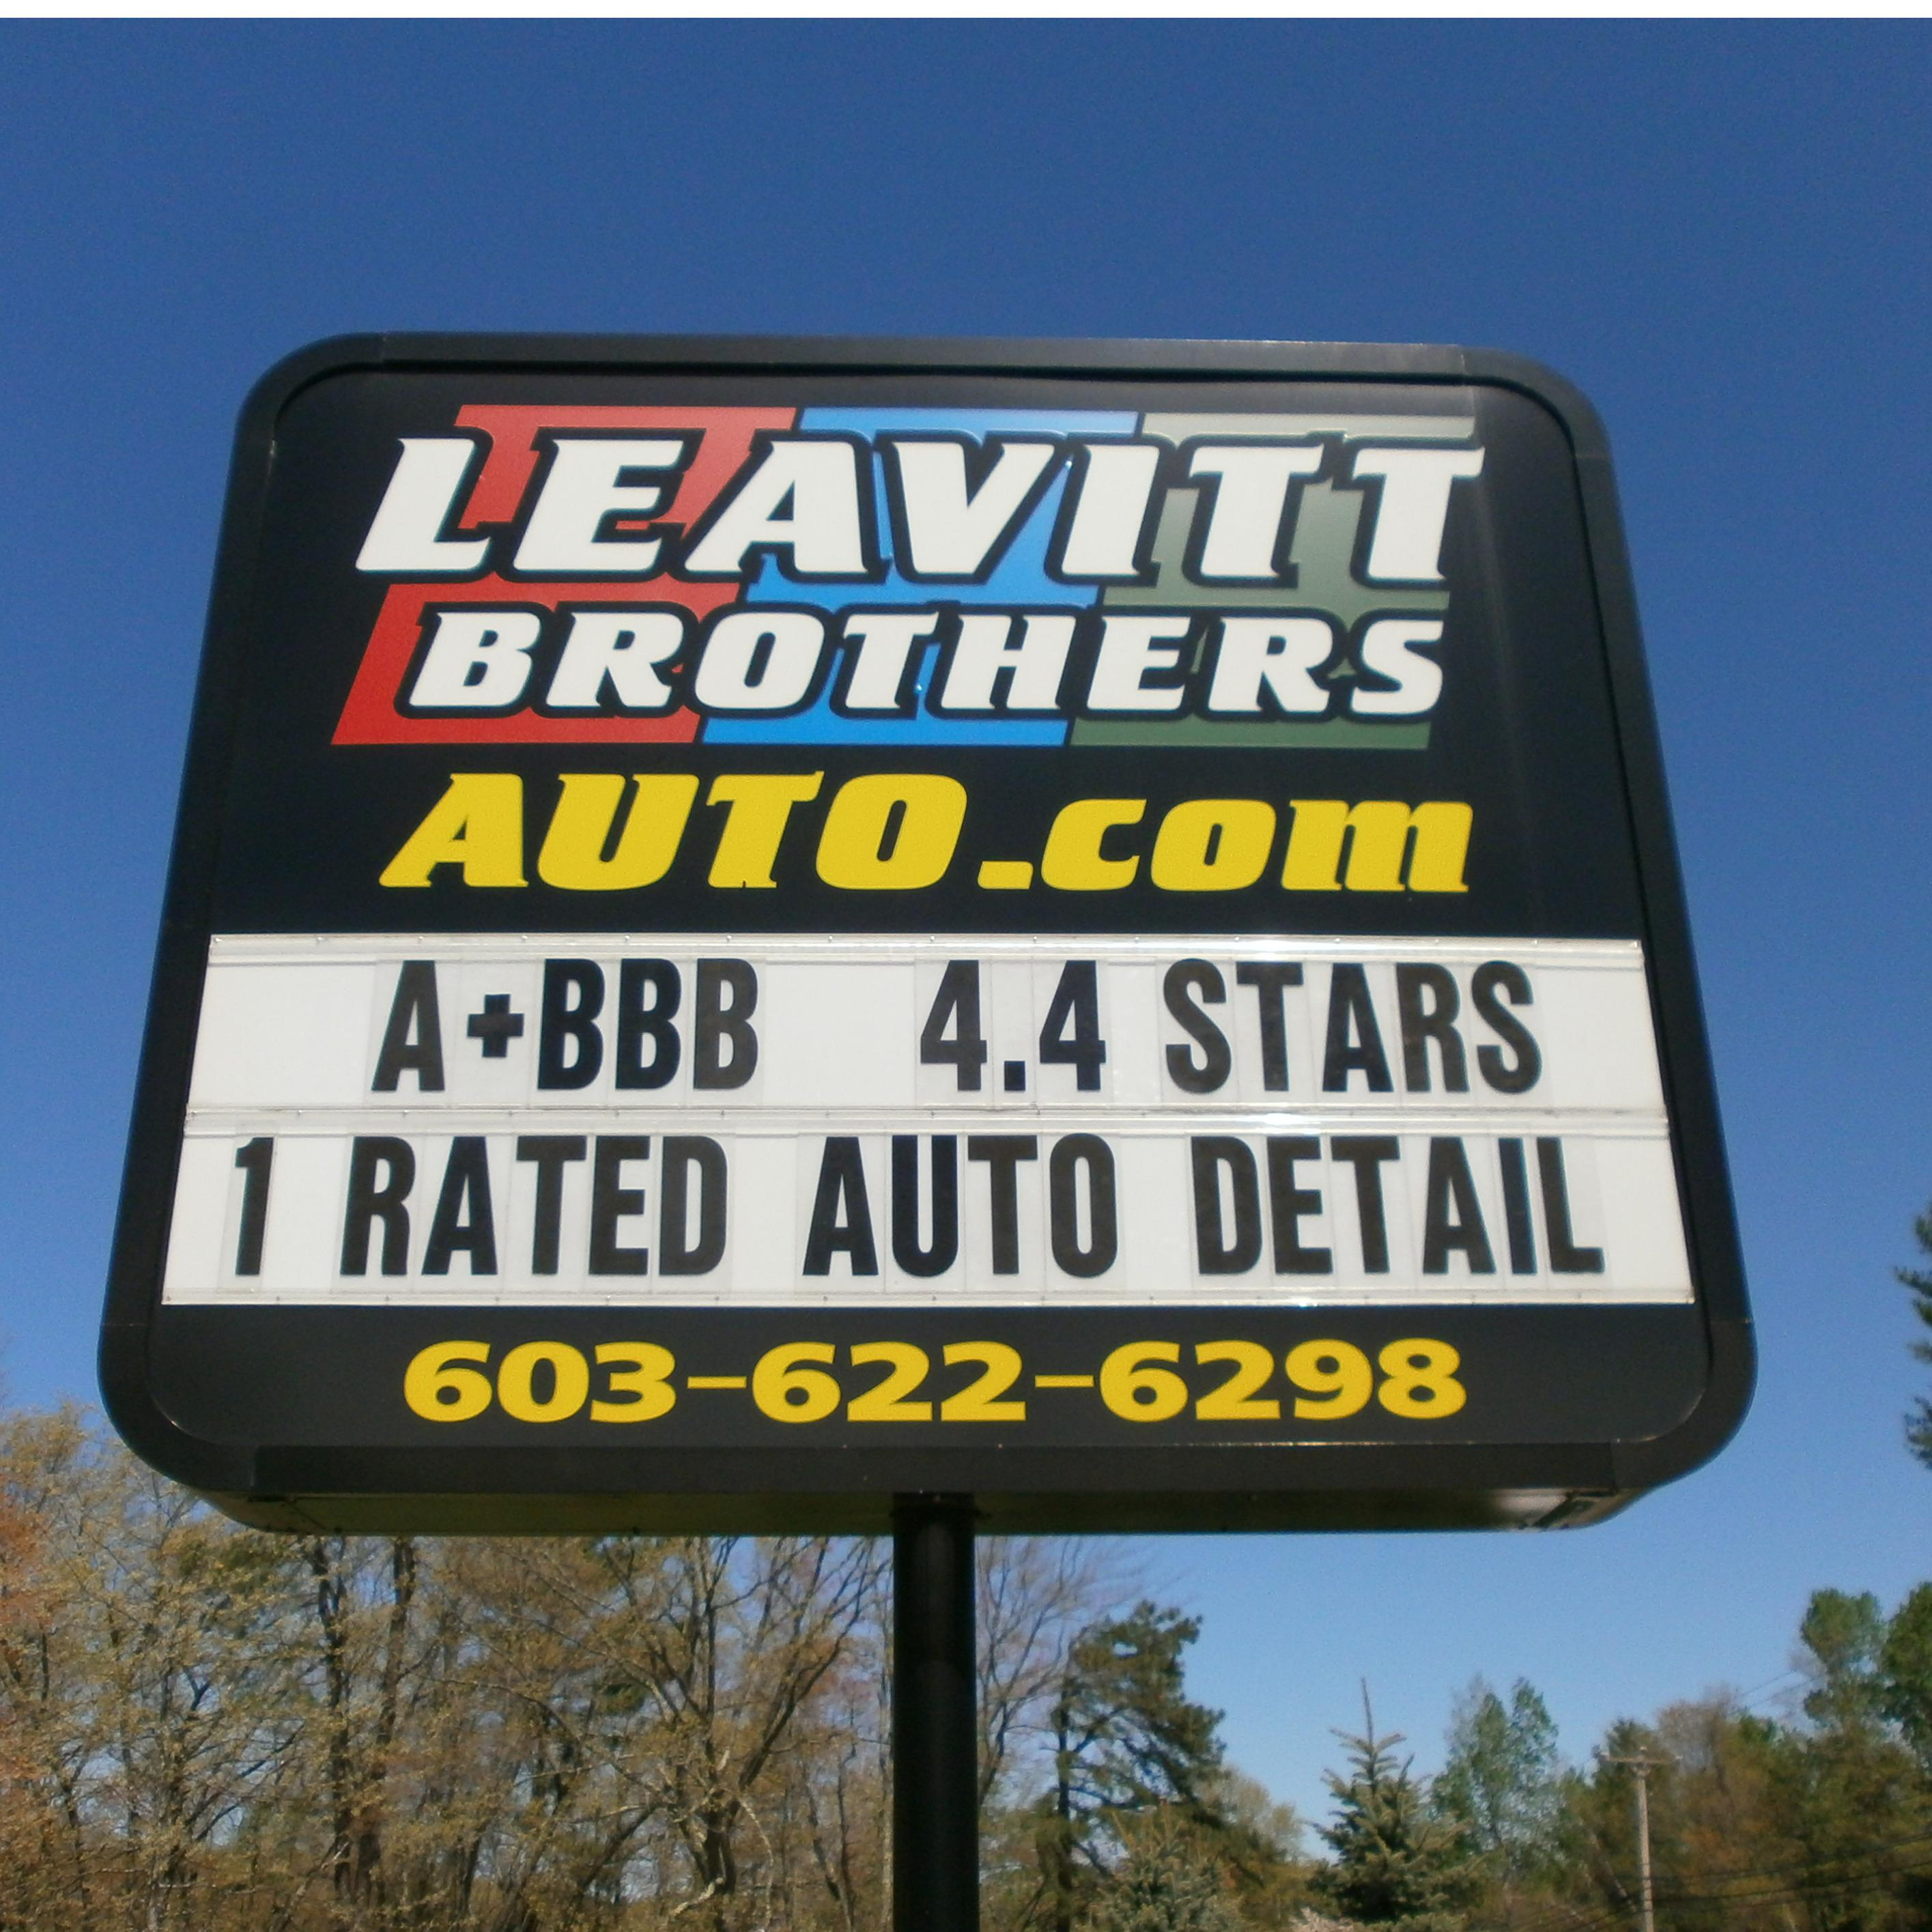 Leavitt Brothers Auto Sales-Consignments-Detailing